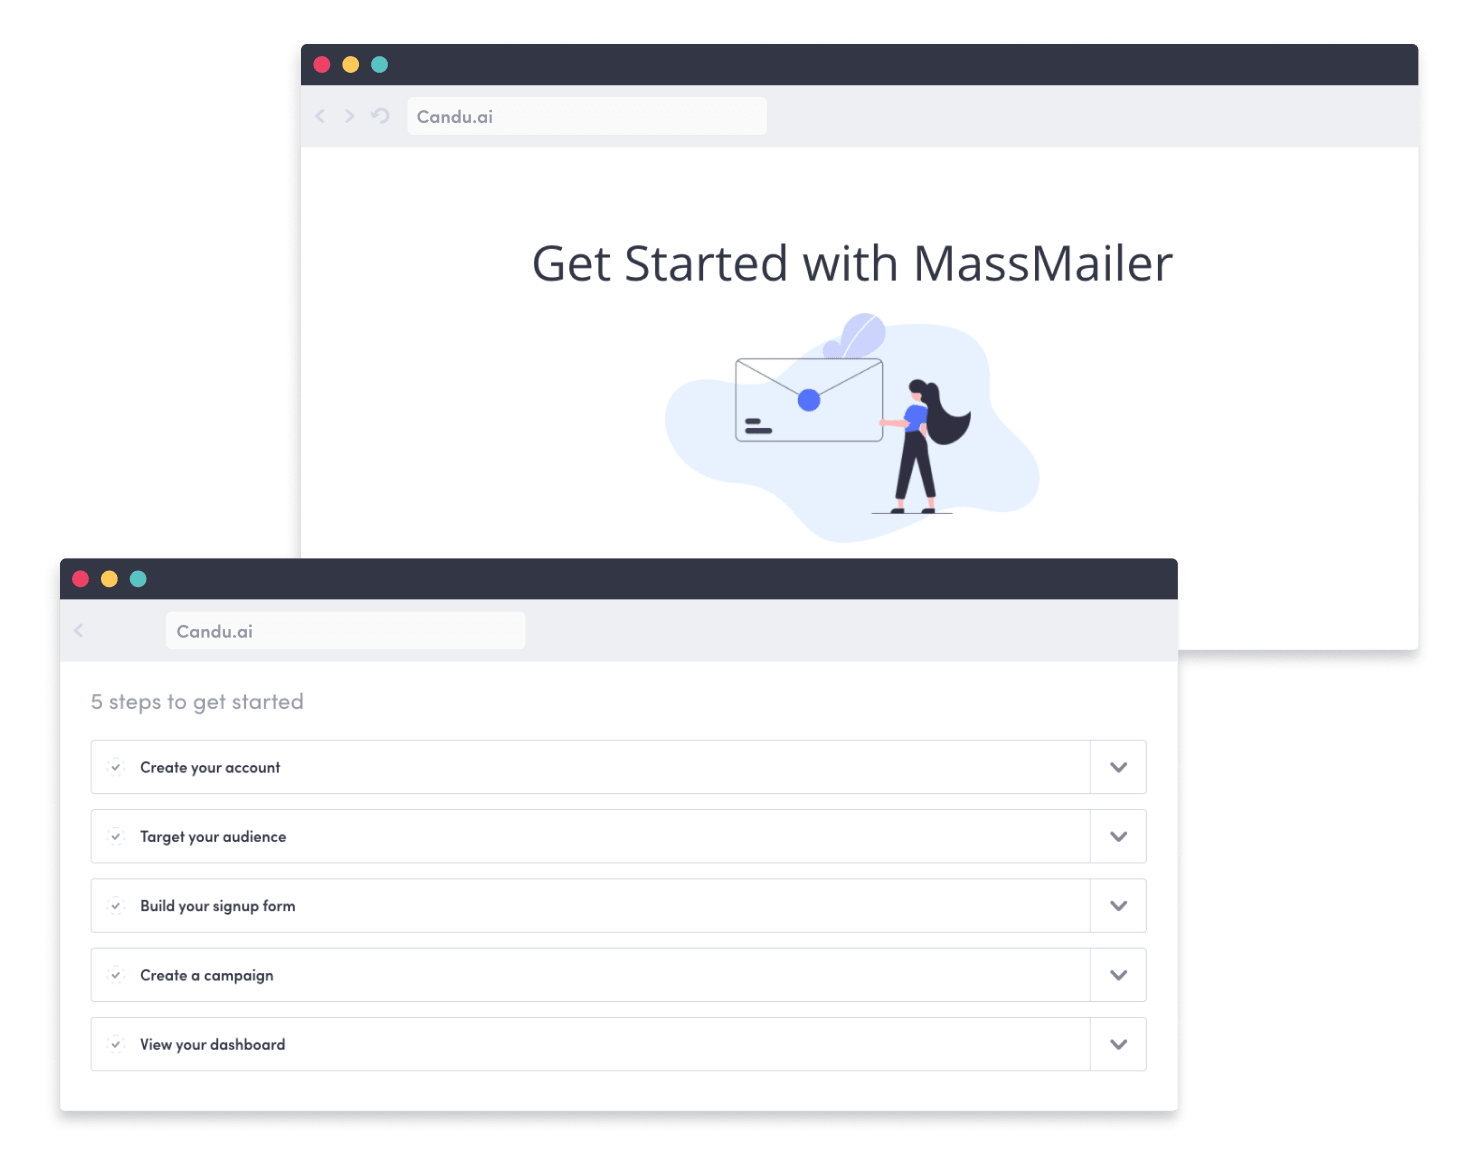 Use Candu's drag-and-drop web builder to create the best customer onboarding processes and get your SaaS clients up and running.